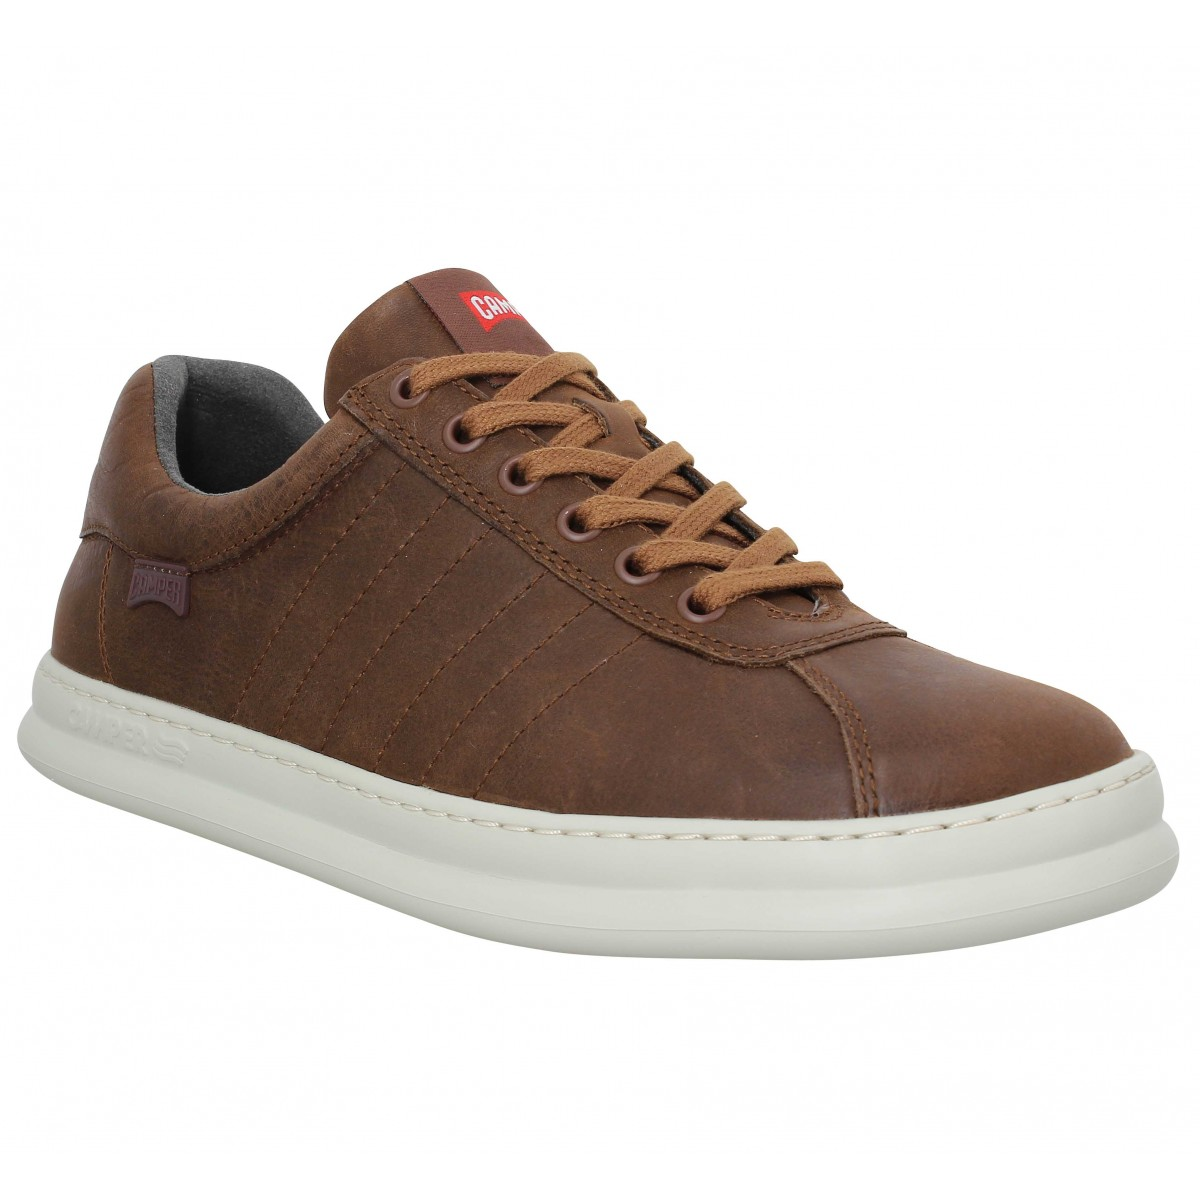 6d7b75fc6044f2 Camper runner four lo cuir homme marron homme | Fanny chaussures